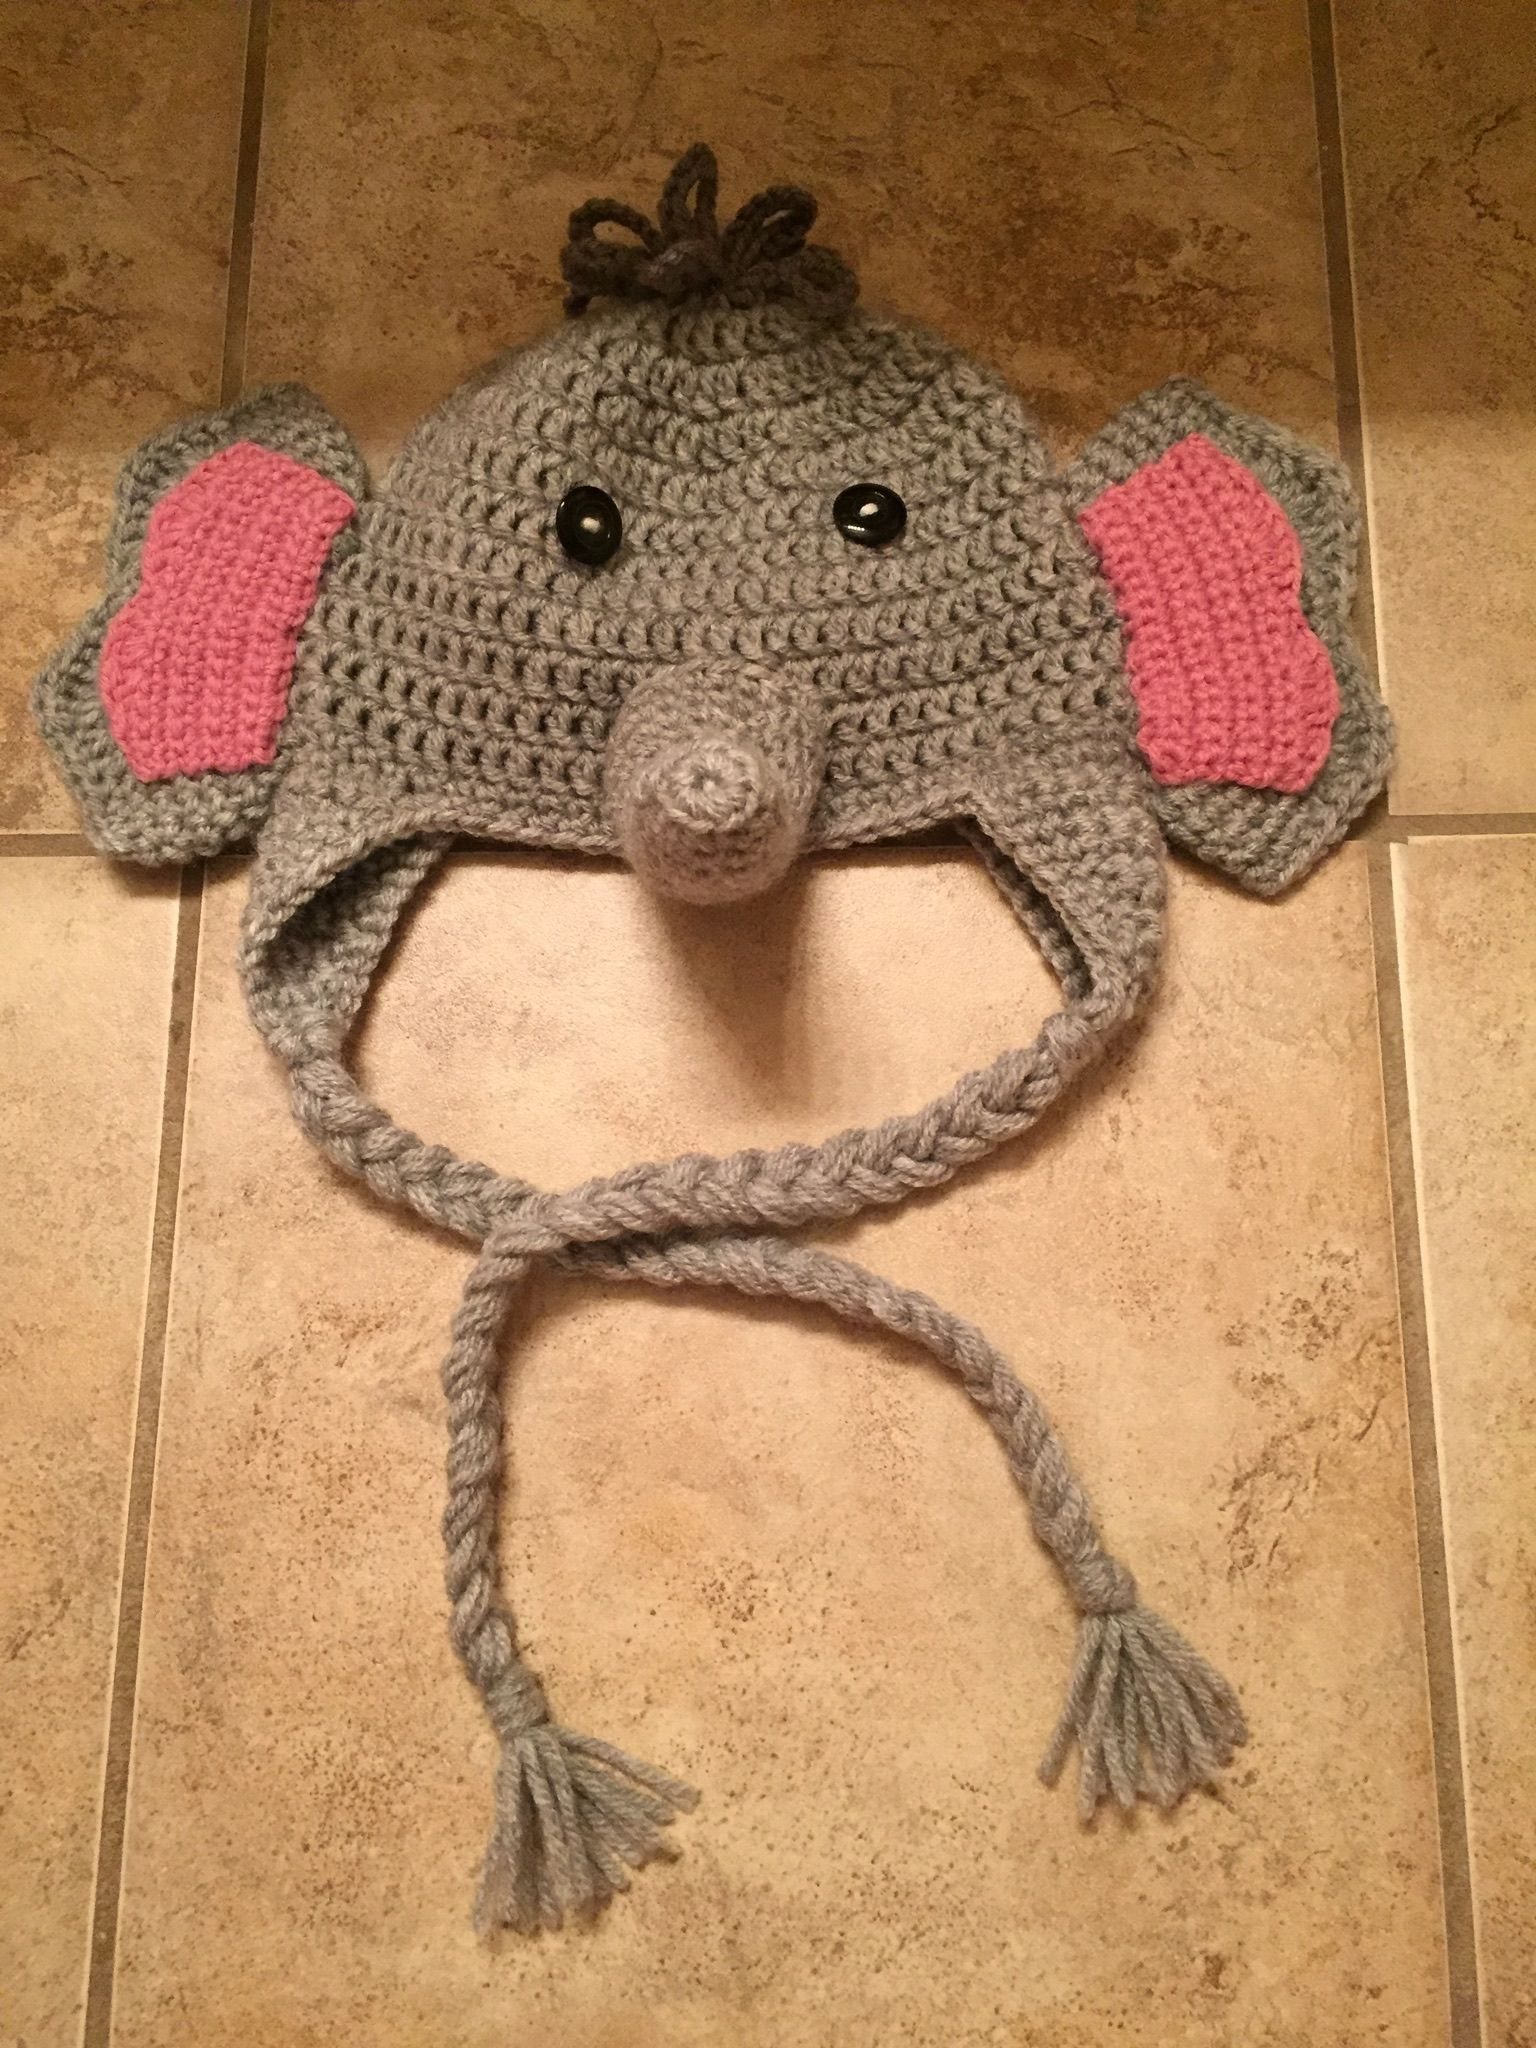 c07c1bd9940 Toddler size crochet elephant hat with ear flaps and braids ...